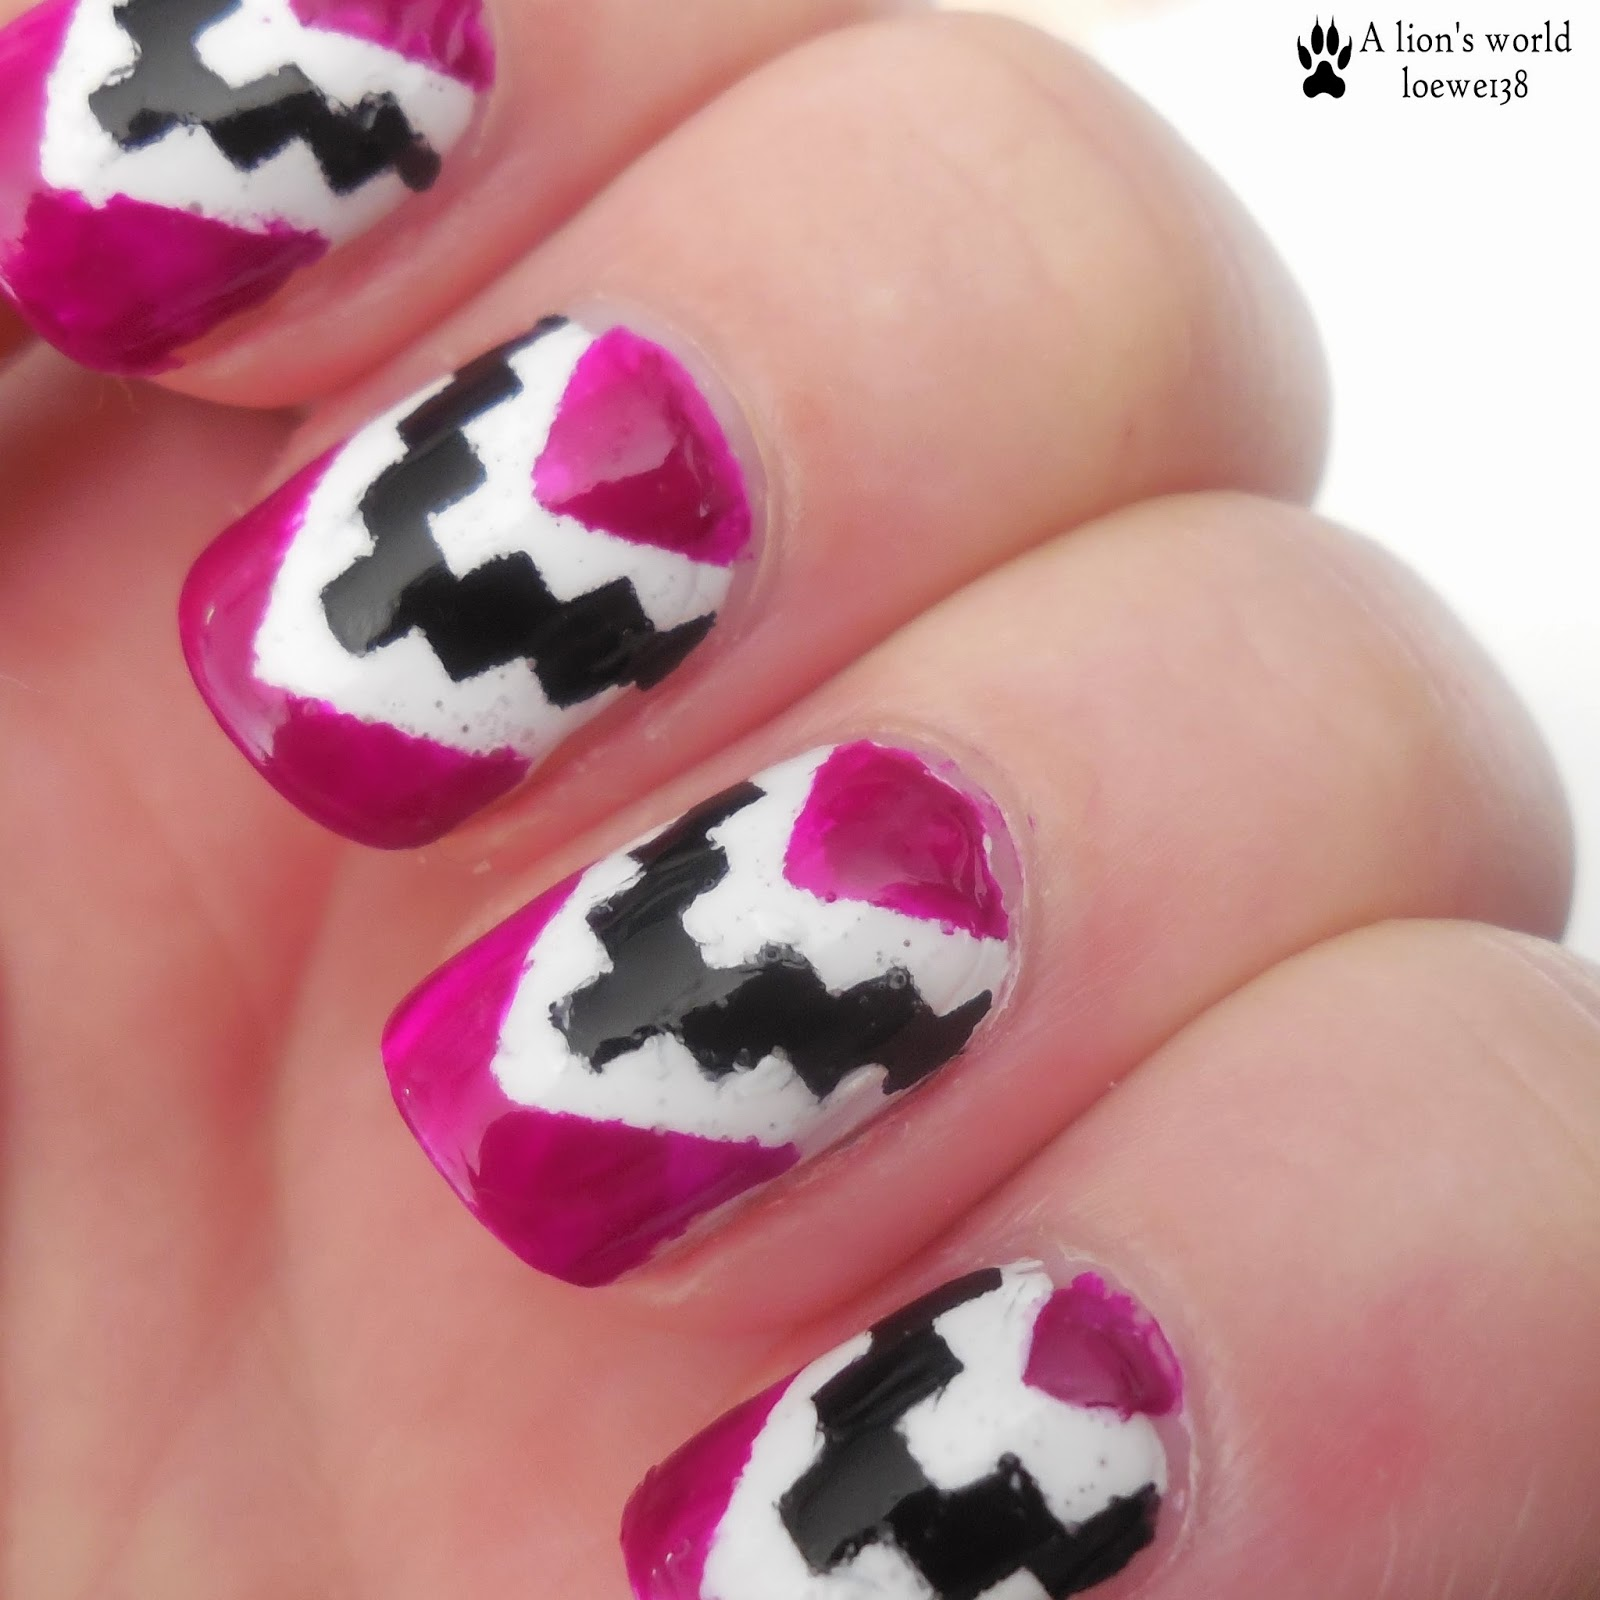 http://alionsworld.blogspot.com/2015/03/svenjas-nailart-im-test-aztec-nails.html